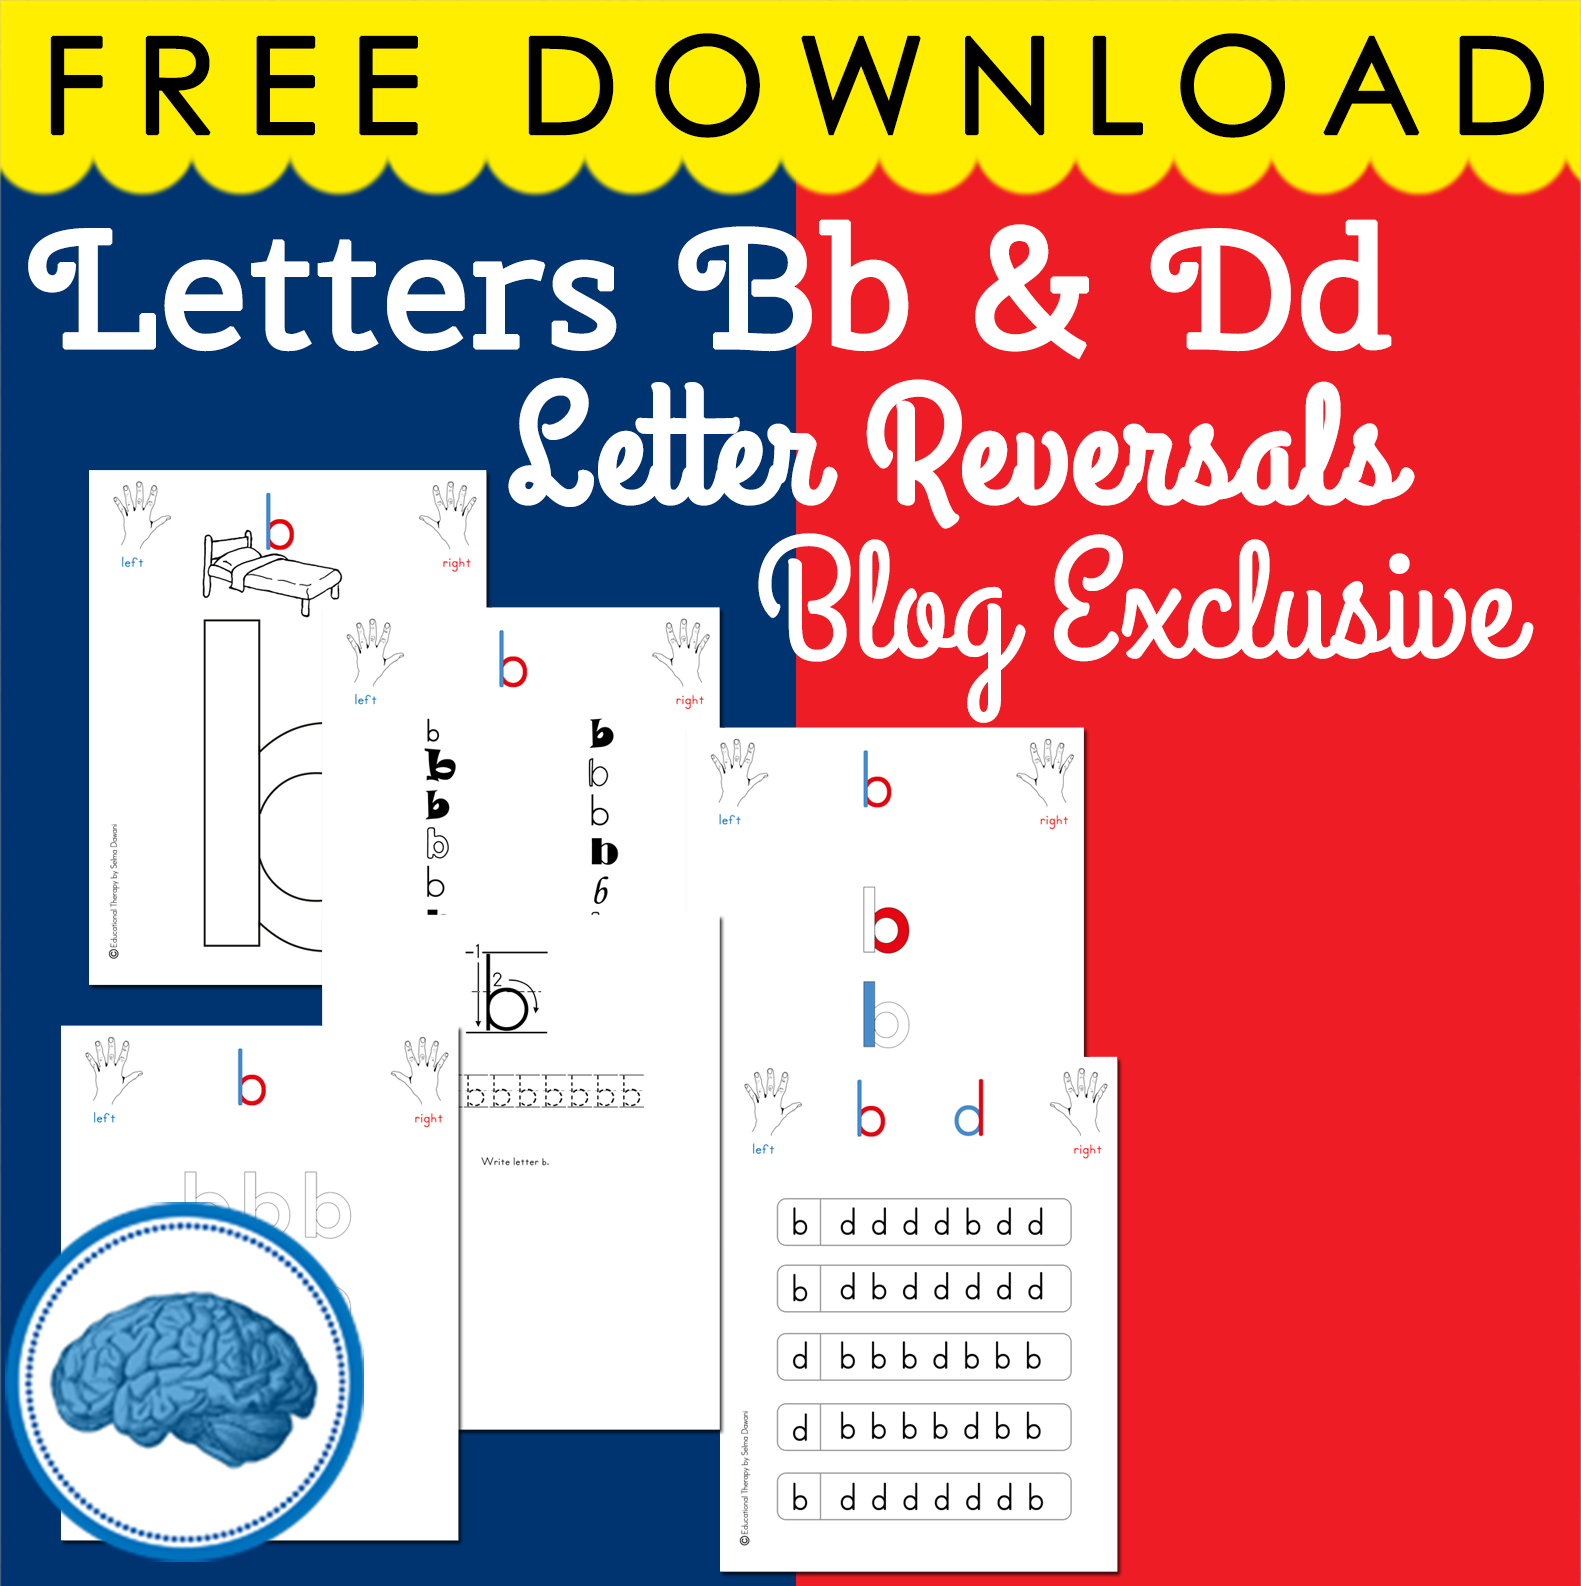 Free Educational Therapy Download To Help With Reversals